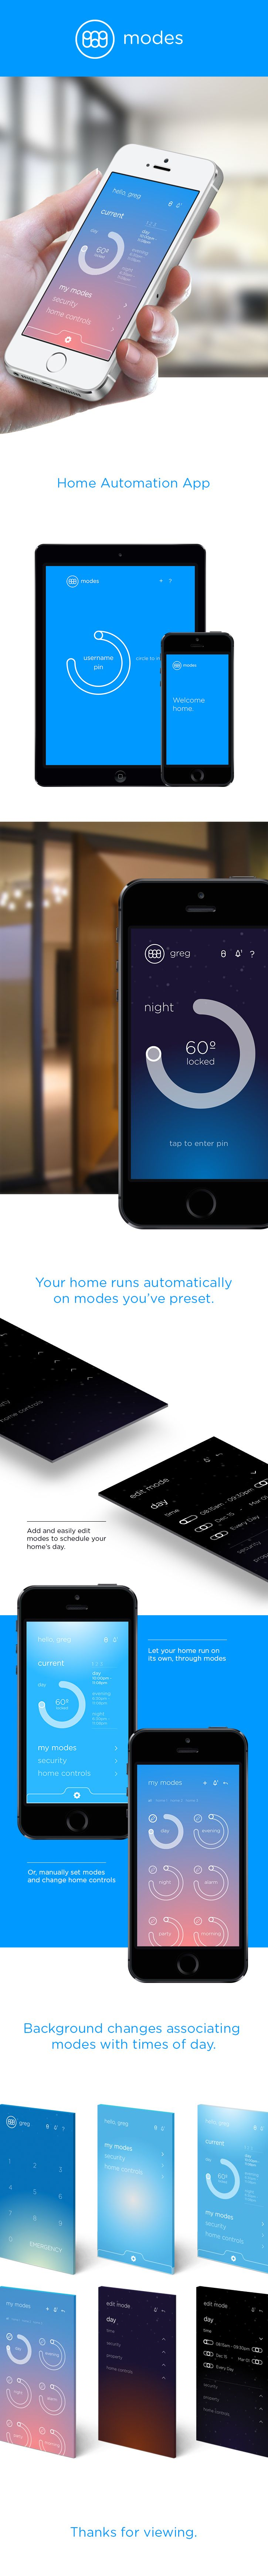 This is a home automation app designed to run your home without you having to worry about setting it daily. Its designed to save you money on energy bills, keep your home secure, and help your home transition through the day efficiently. This is a concept…